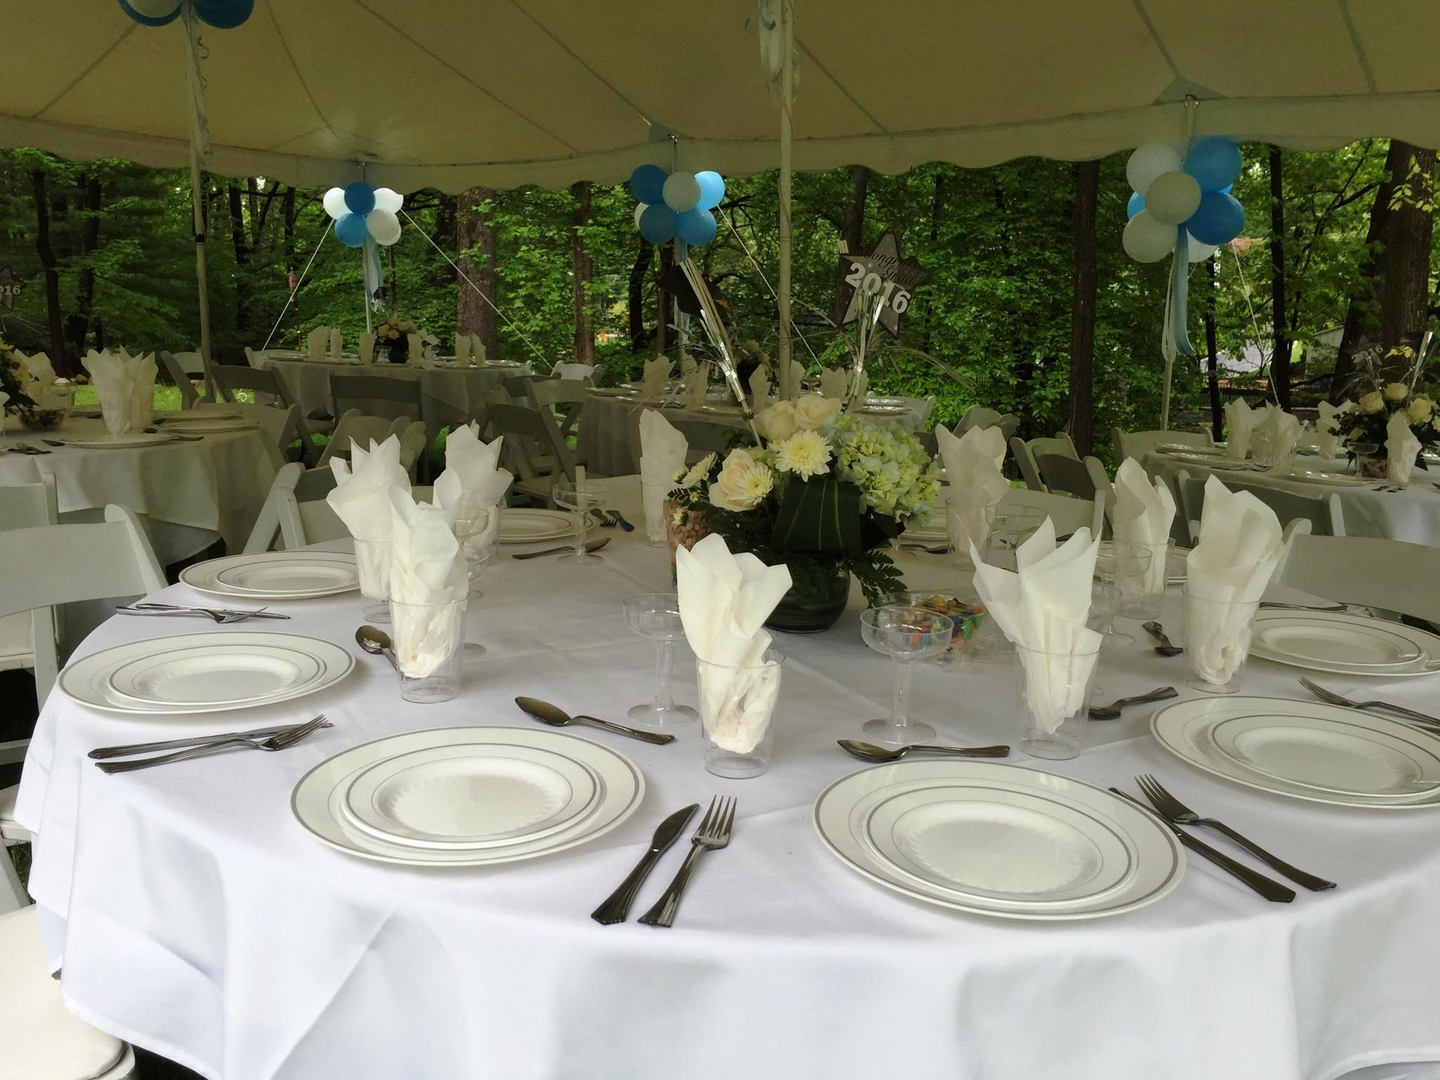 white receptions rental shower diy black linens rentals indiana linen damask weddi northwest runner dffb wedding for crown chair event on baby decor show table ideas point